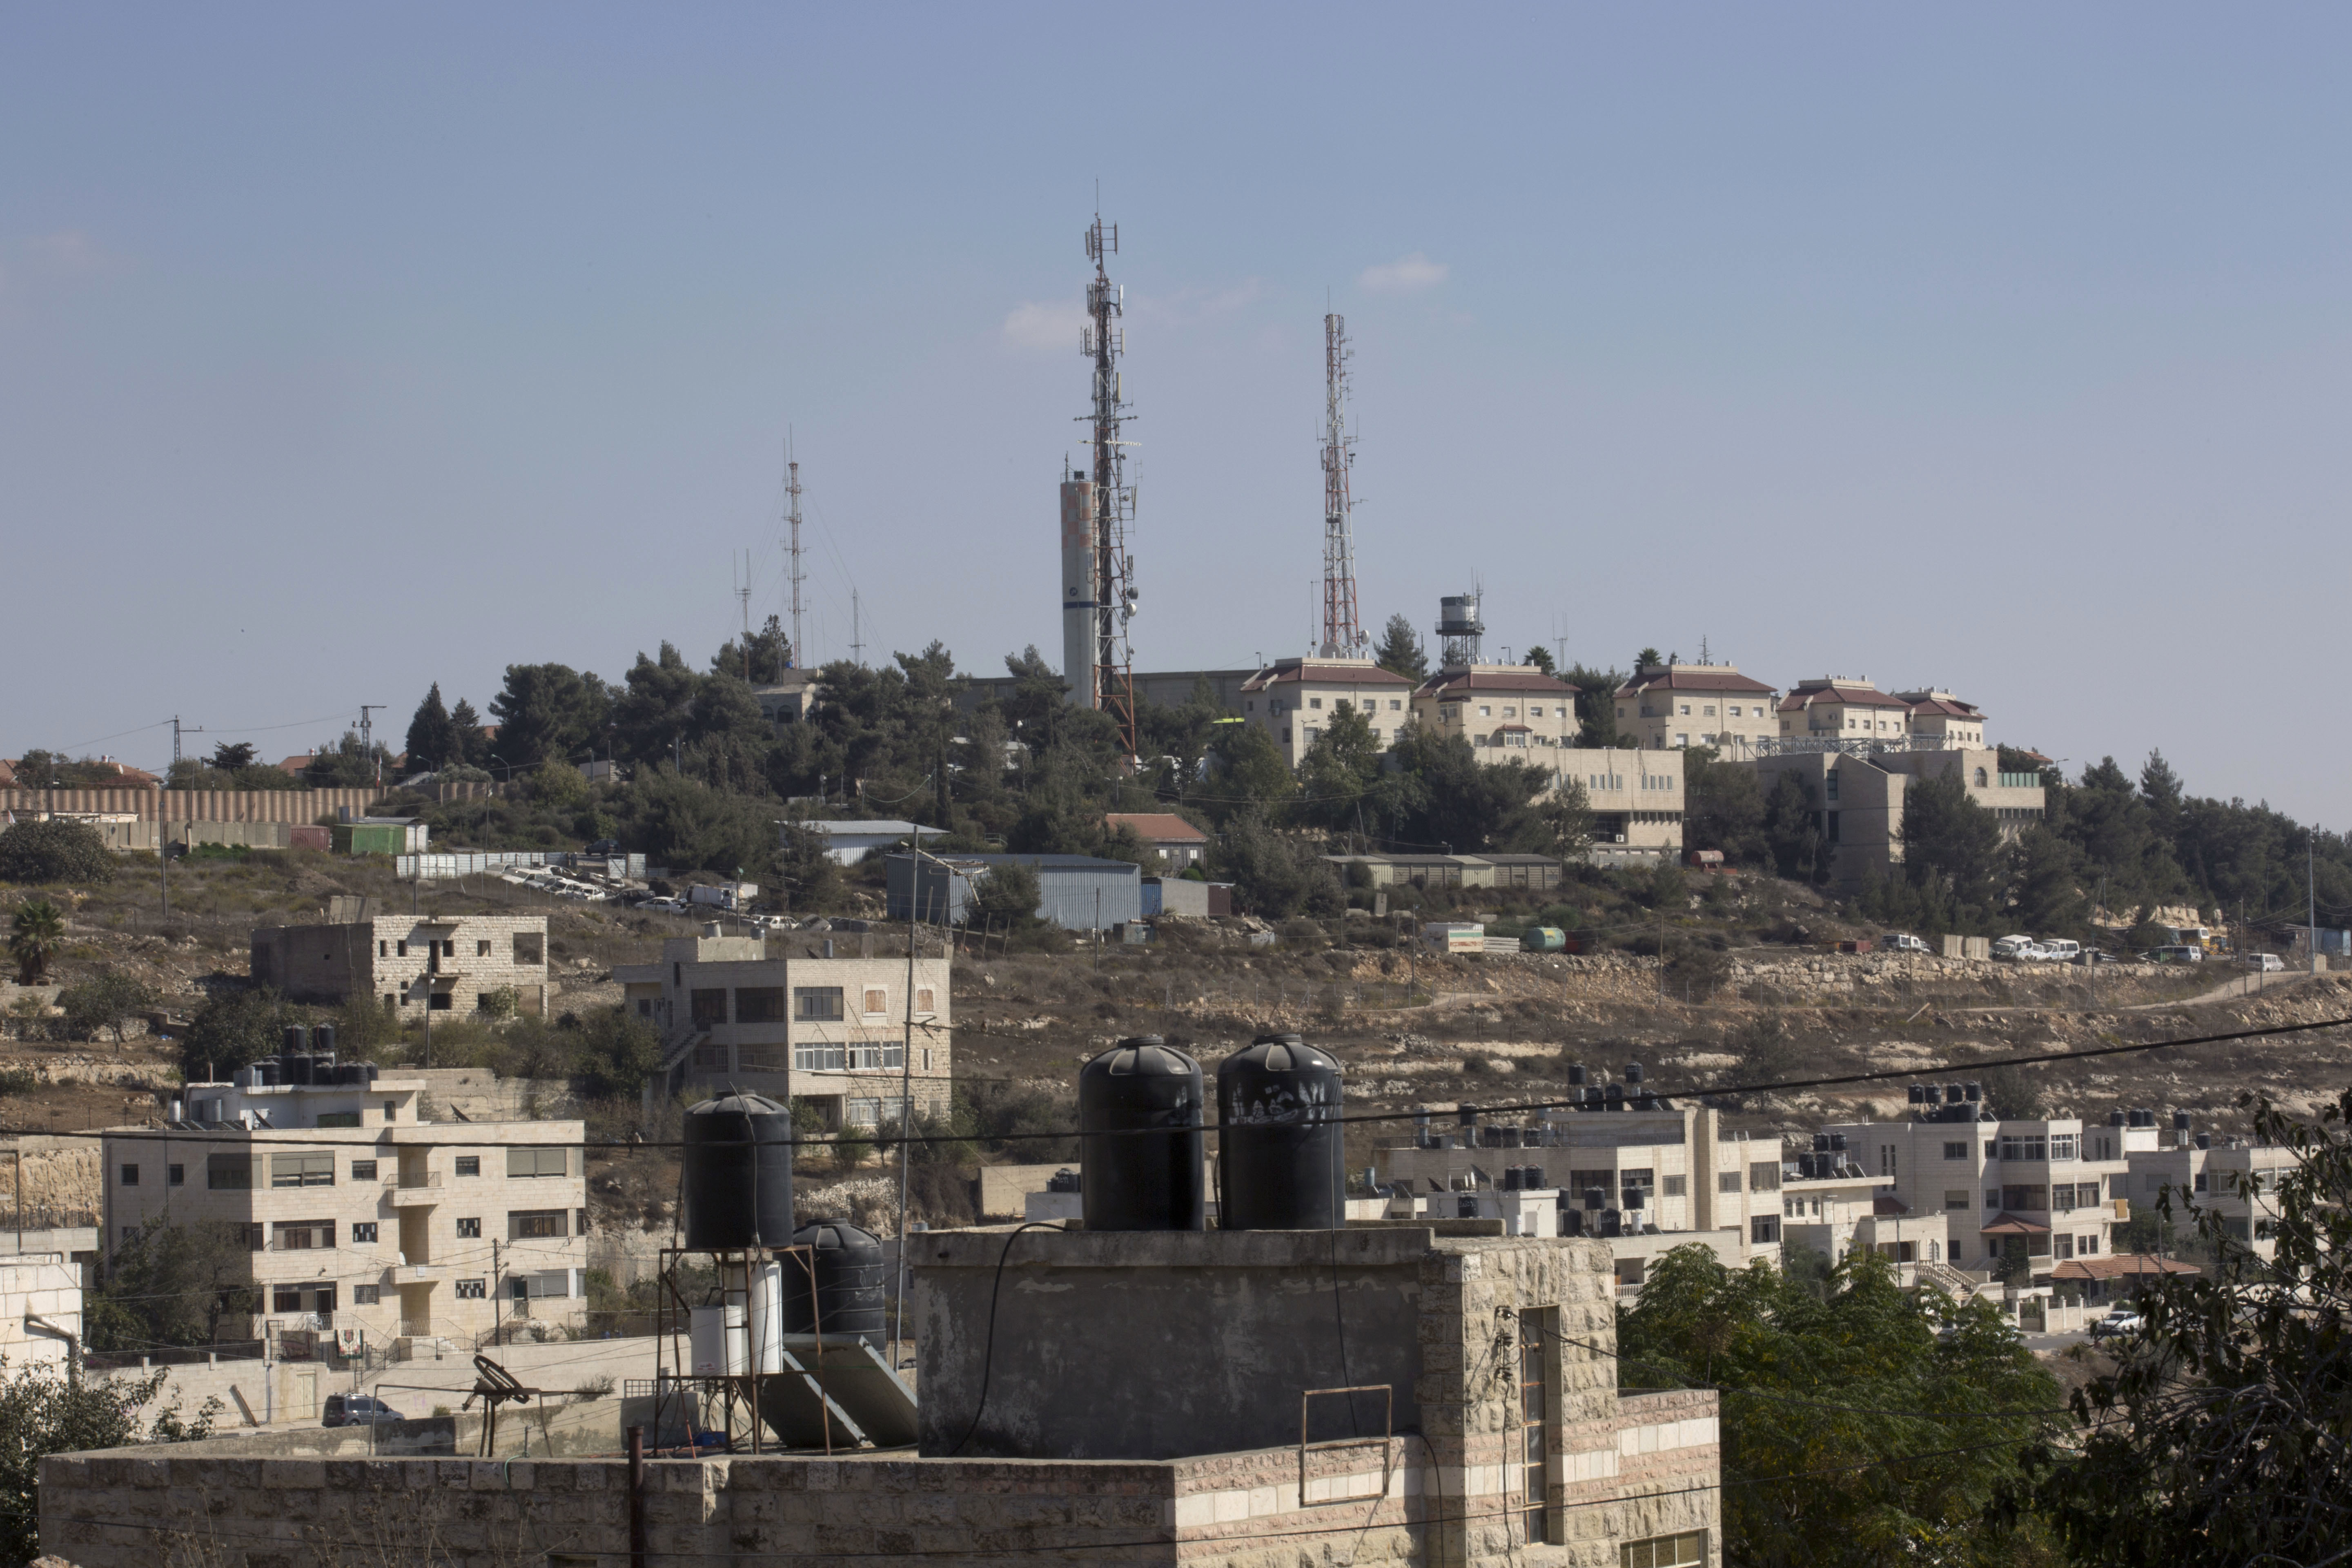 Part of the Israeli settlement of Psagot, background, overlooking Palestinian houses, in a suburb of the West Bank city of Ramallah on Oct. 24, 2016. (AP Photo/Nasser Nasser)